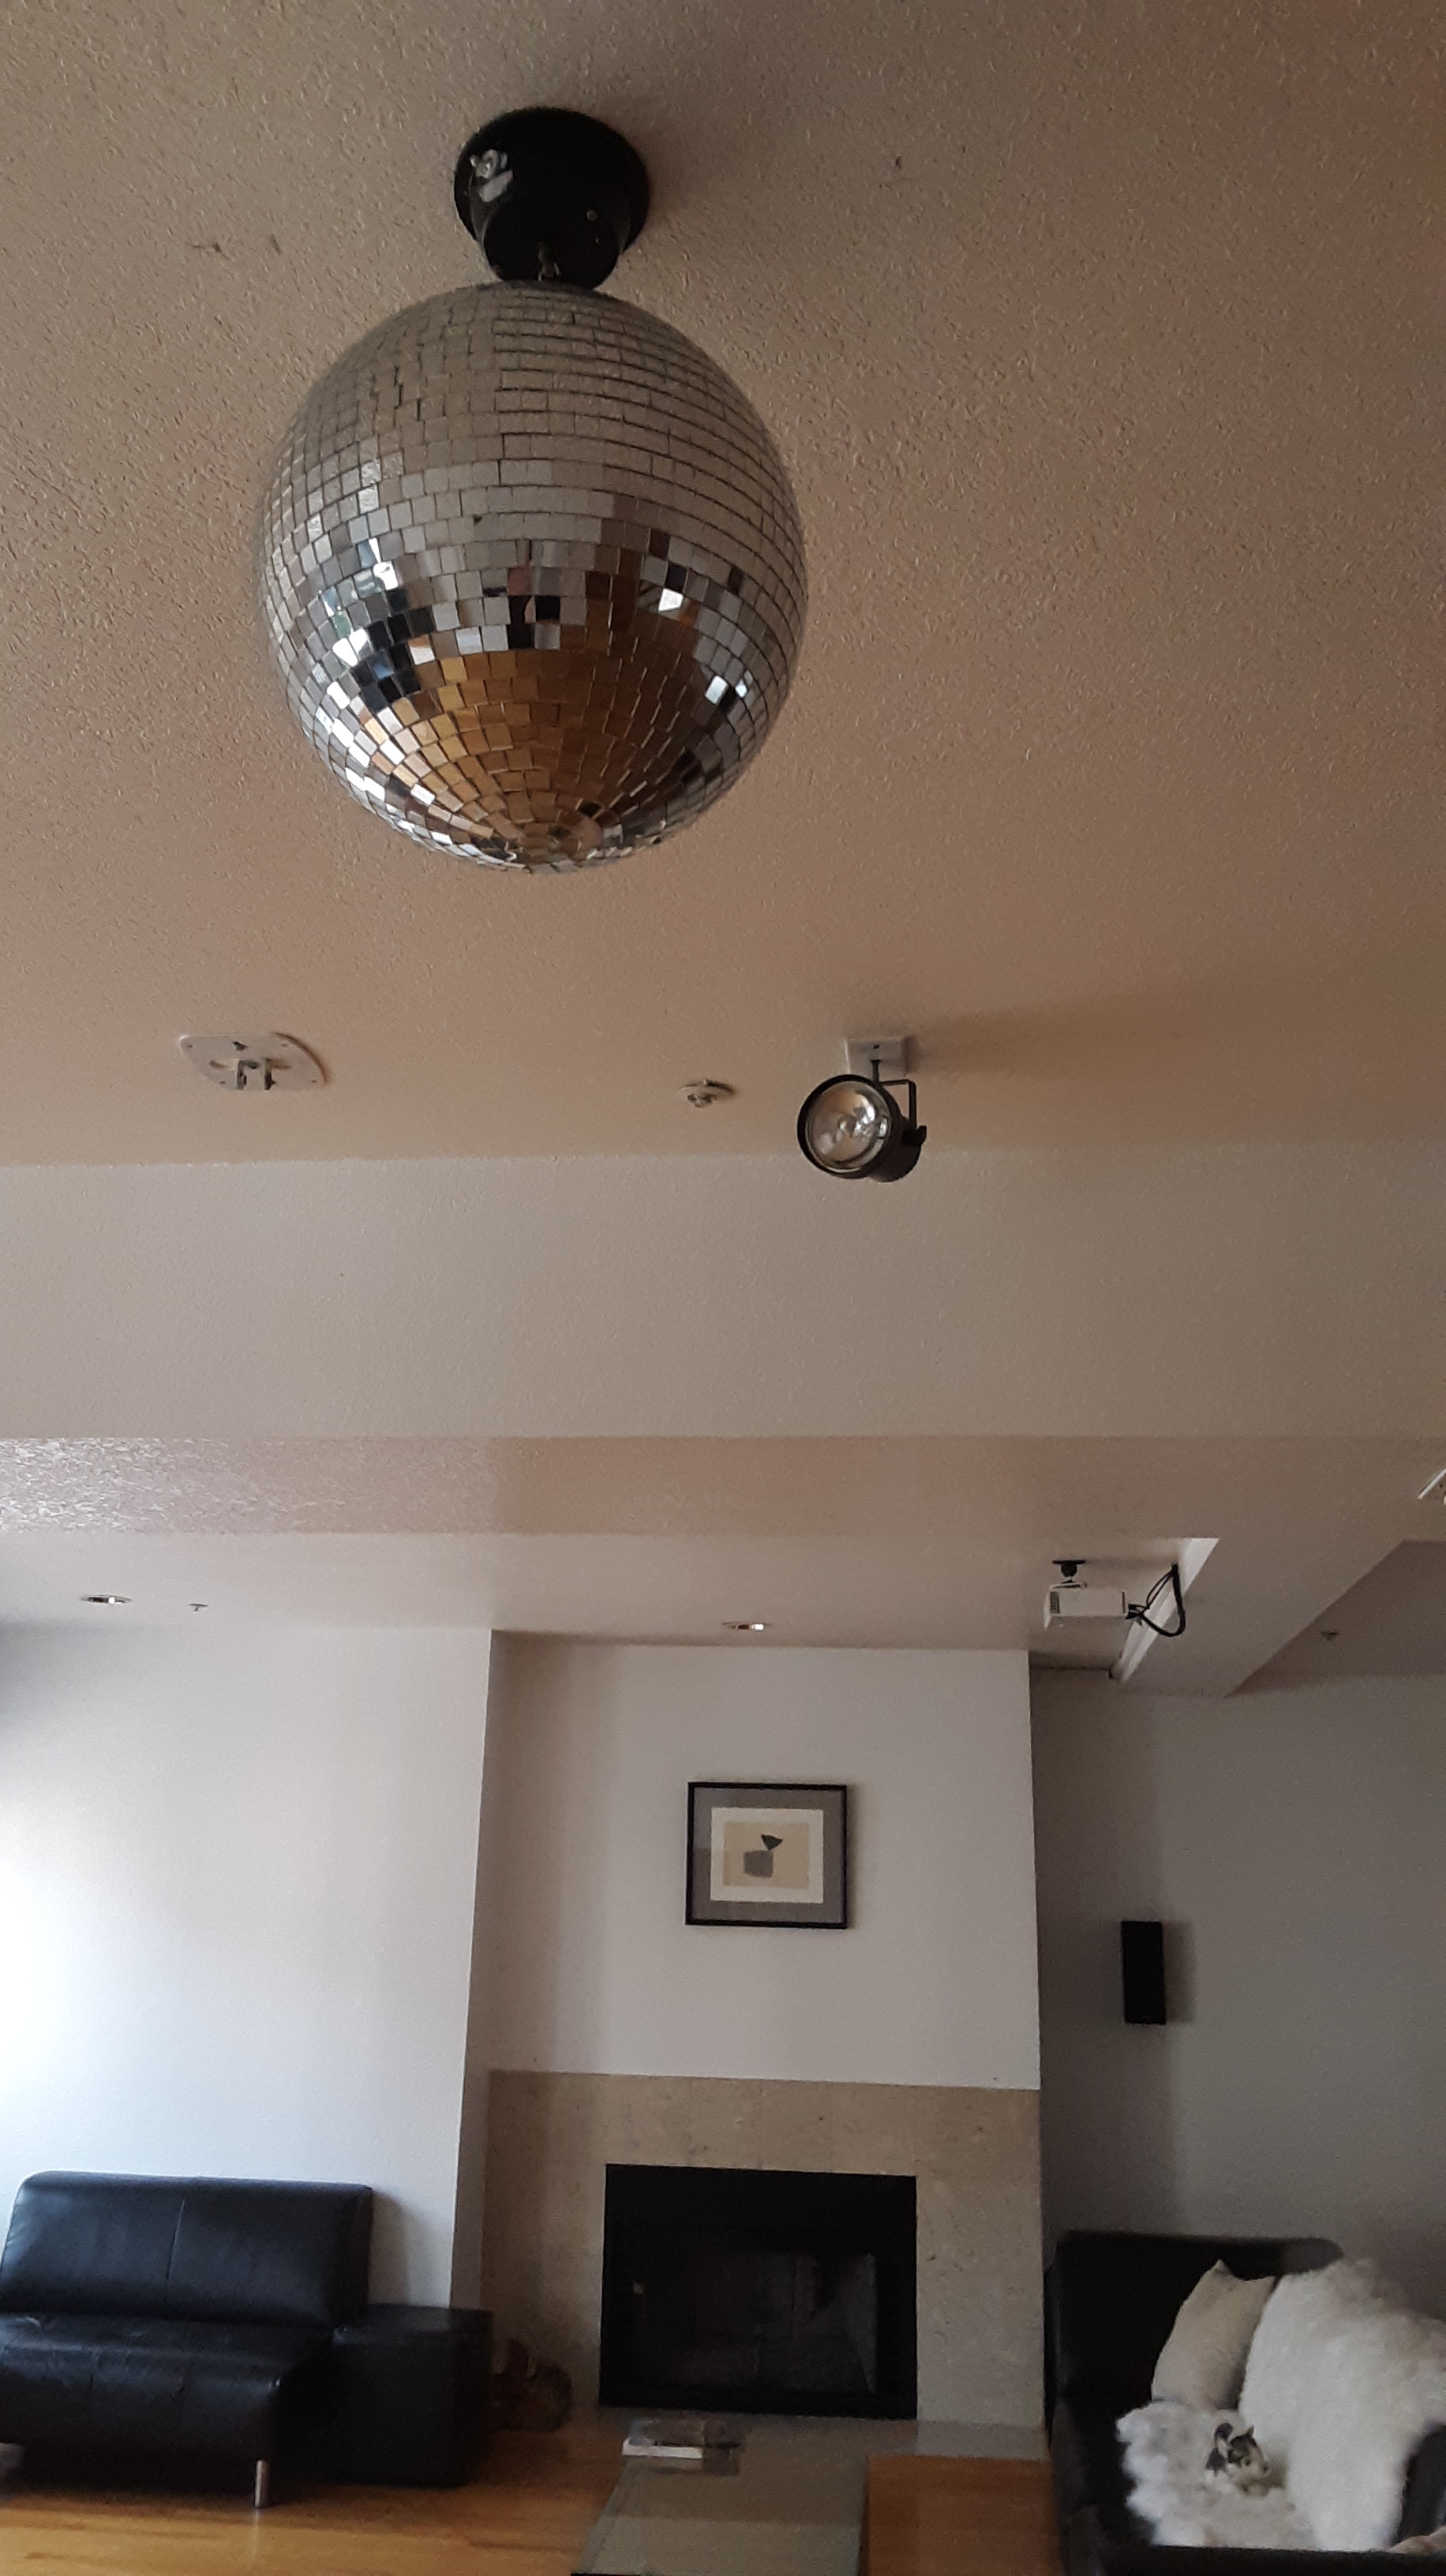 Turn on the disco ball and dance